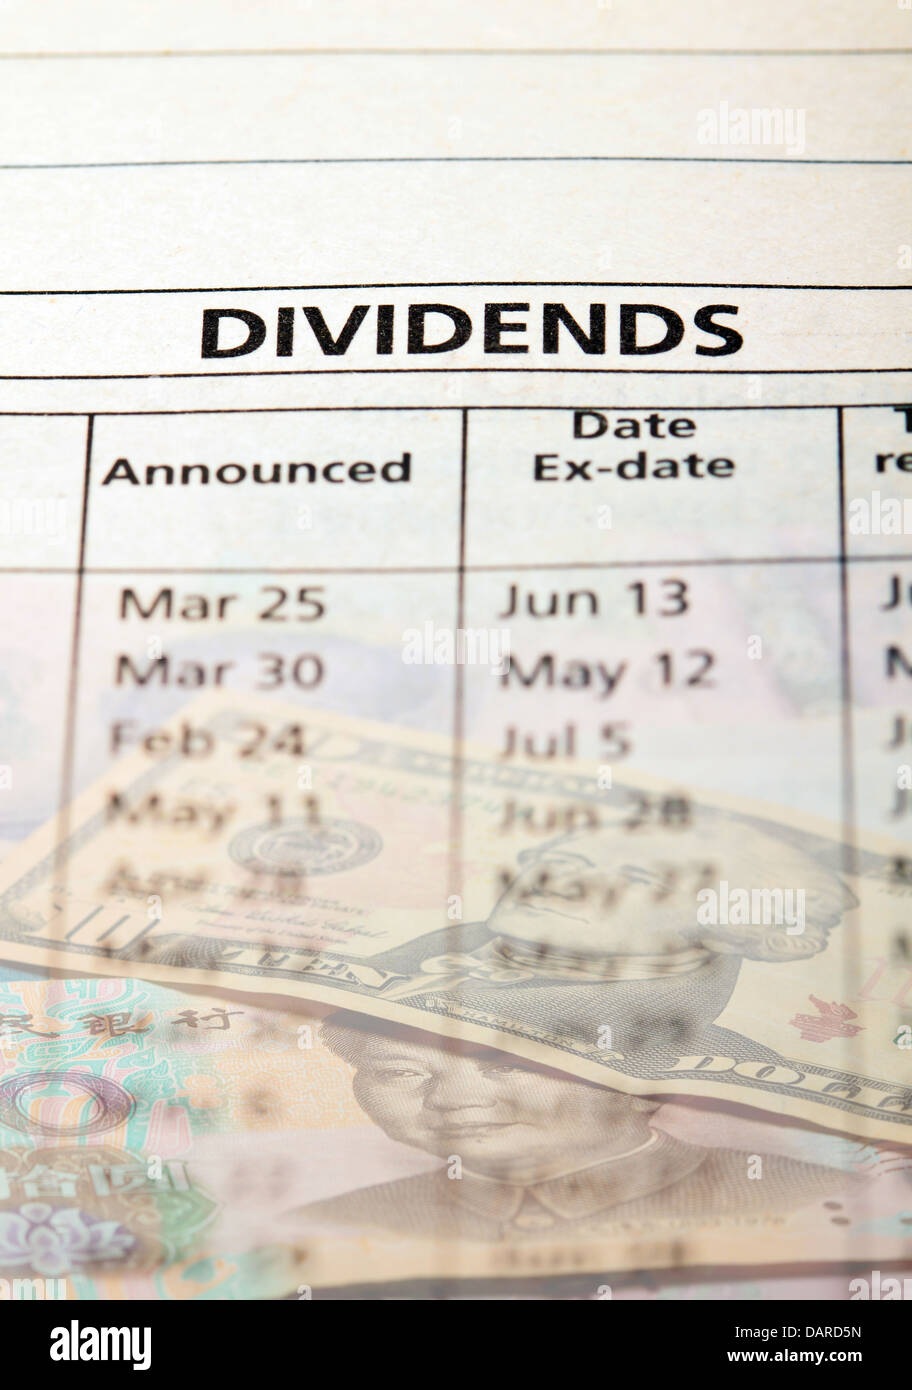 Dividend payout announcement. Concept of return on investment. - Stock Image